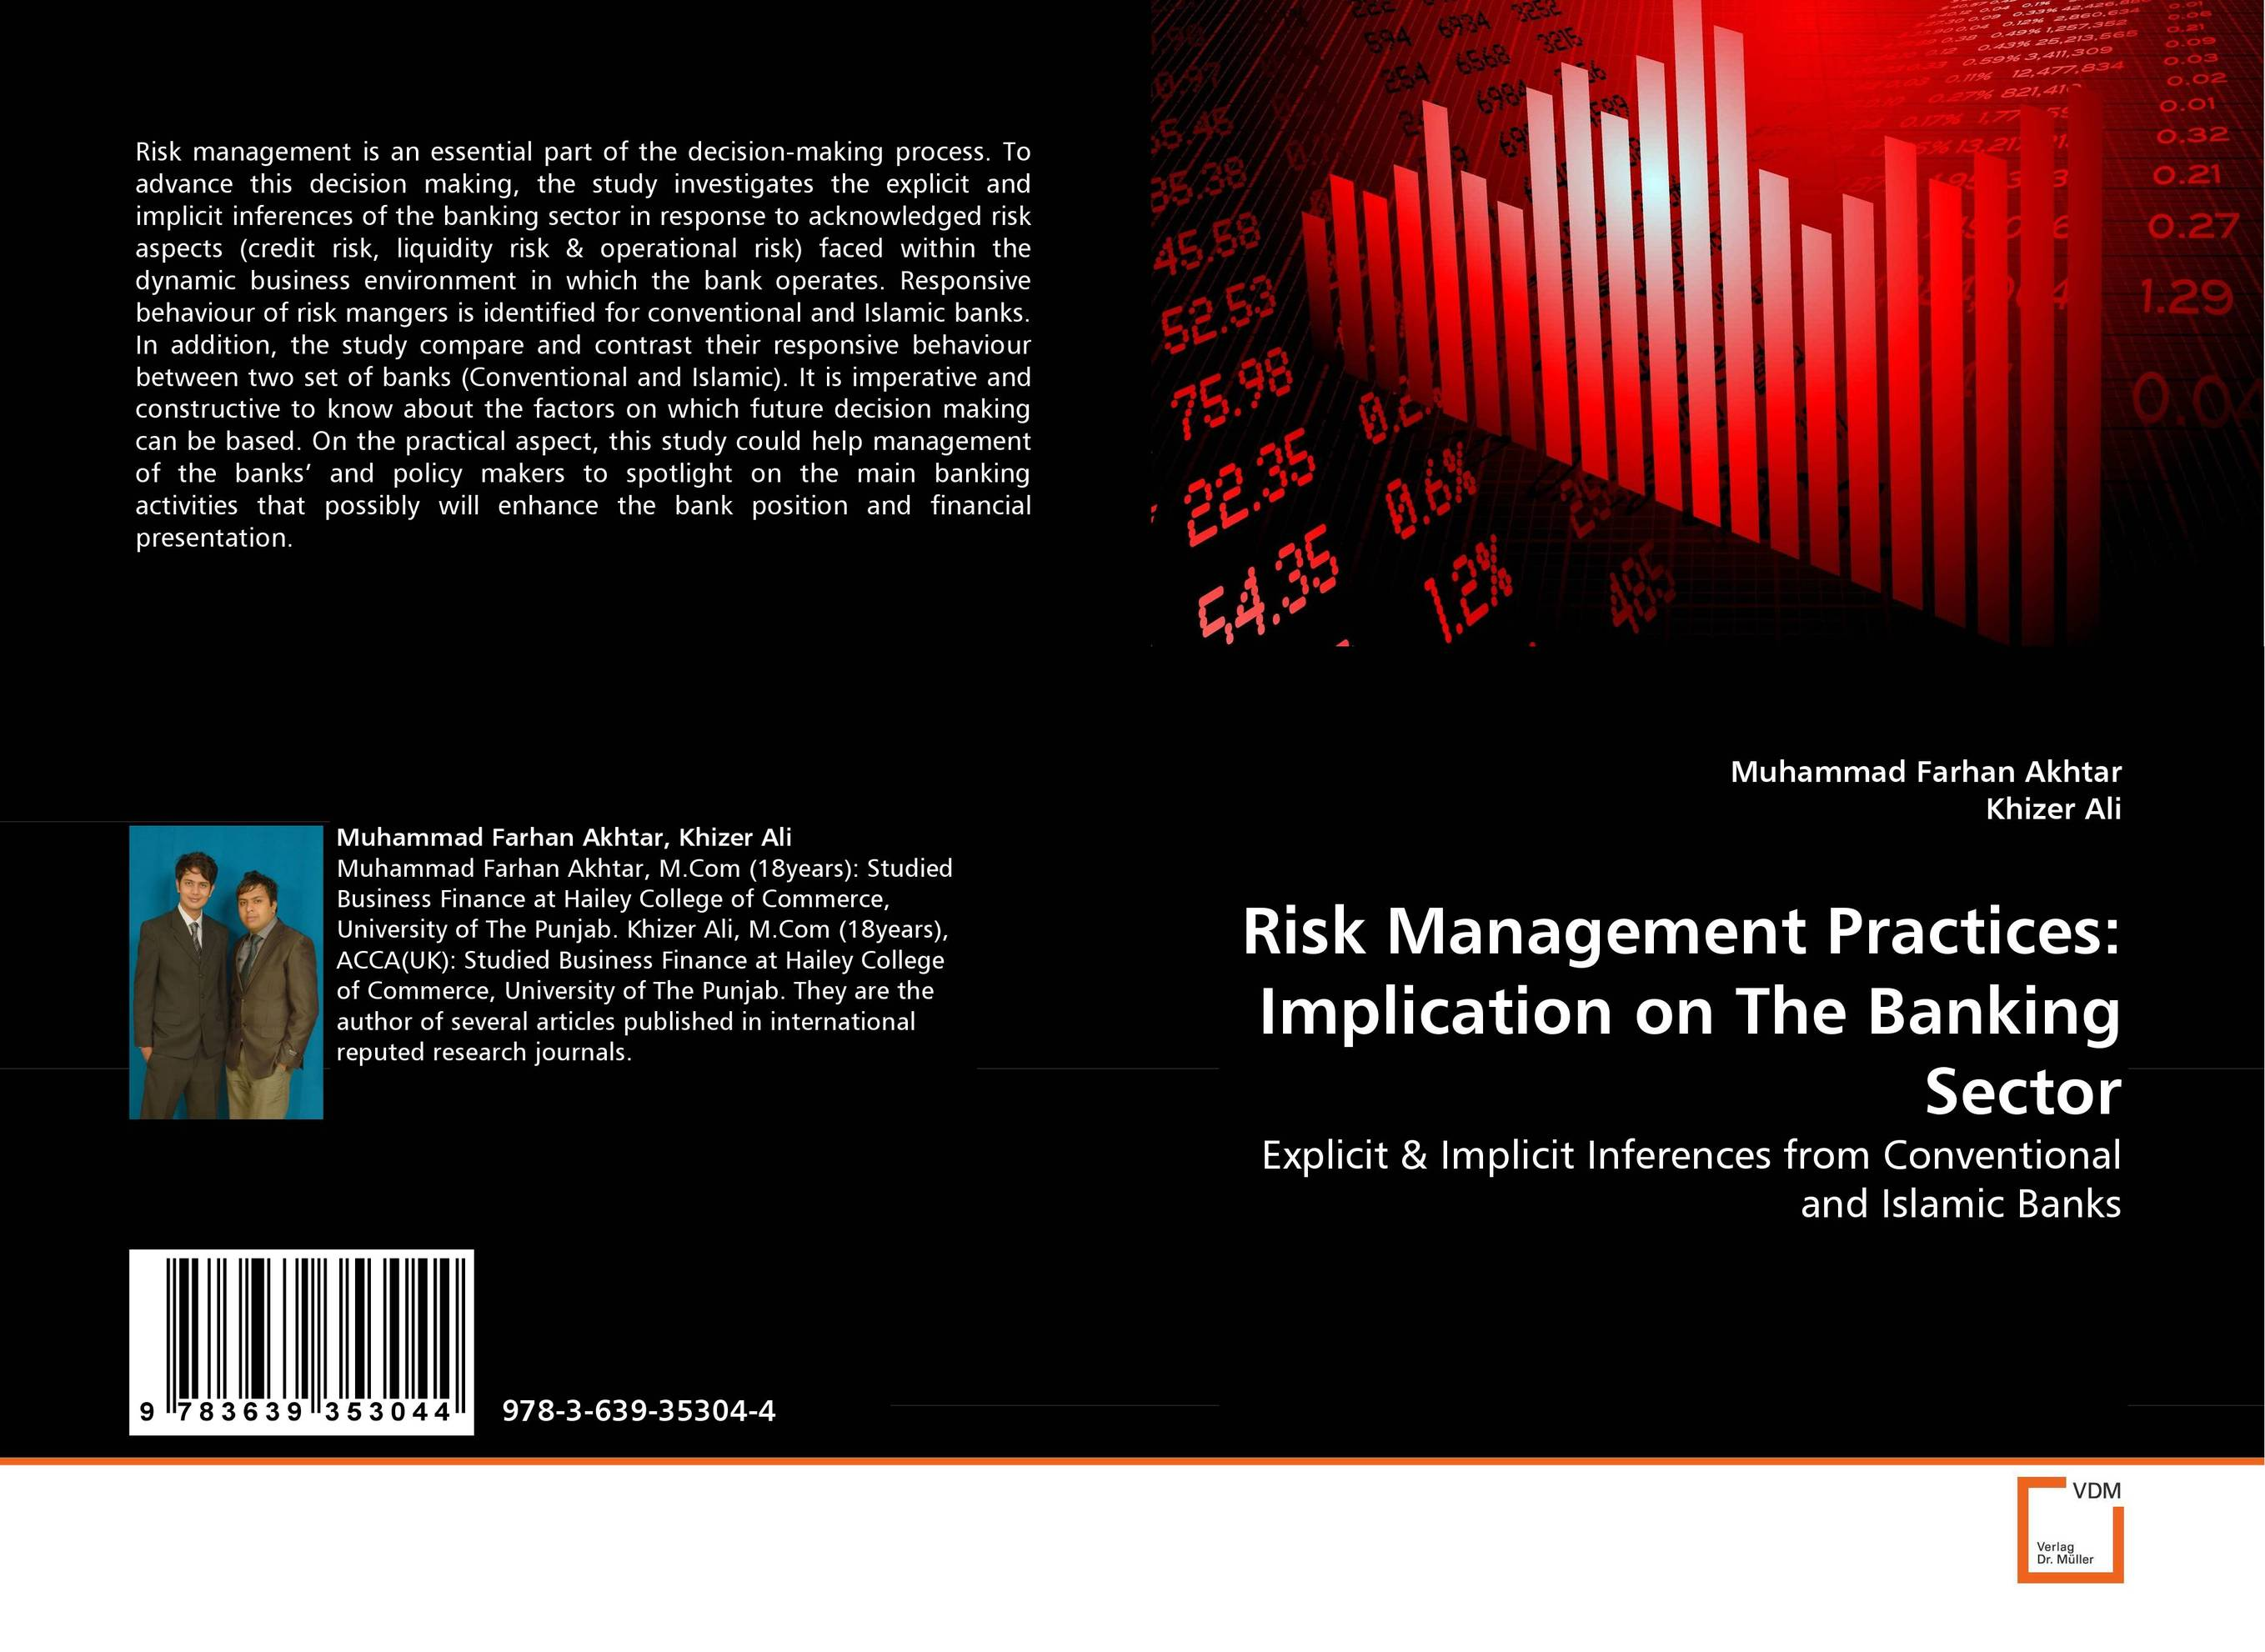 Risk Management Practices: Implication on The Banking Sector kenji imai advanced financial risk management tools and techniques for integrated credit risk and interest rate risk management